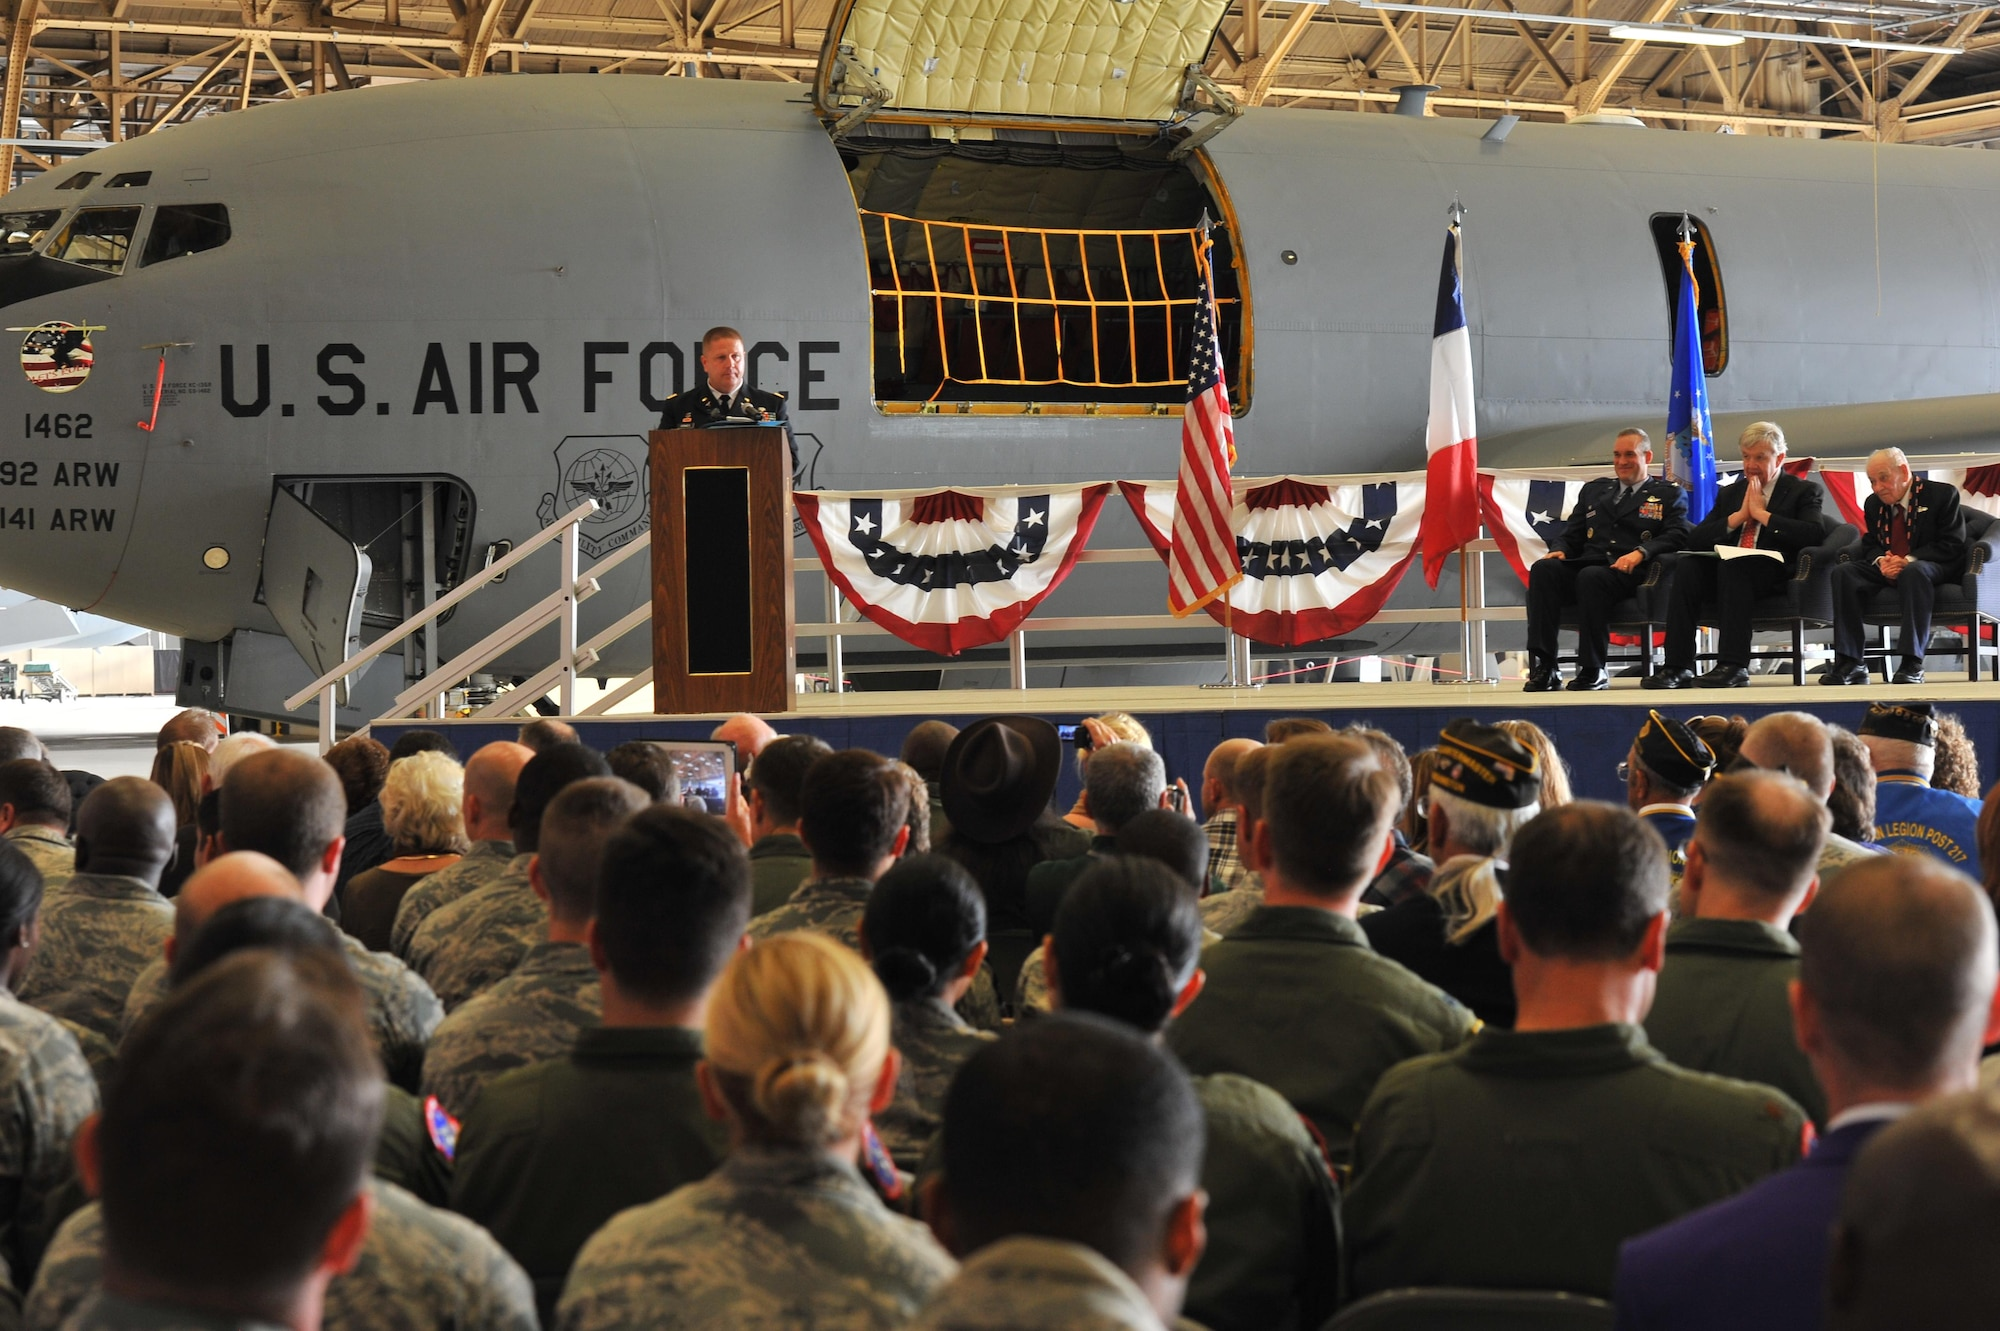 Army Lt. Col. Jeffery Grimes speaks about his uncle, Air Force retired Maj. Clarence Grimes Oct. 25, 2013, at Fairchild Air Force Base, Wash., before his uncle is awarded the French Legion of Honor Medal. The medal is the highest recognition by the French government and was awarded for contributions almost 70 years ago to defend and preserve the independence of France.